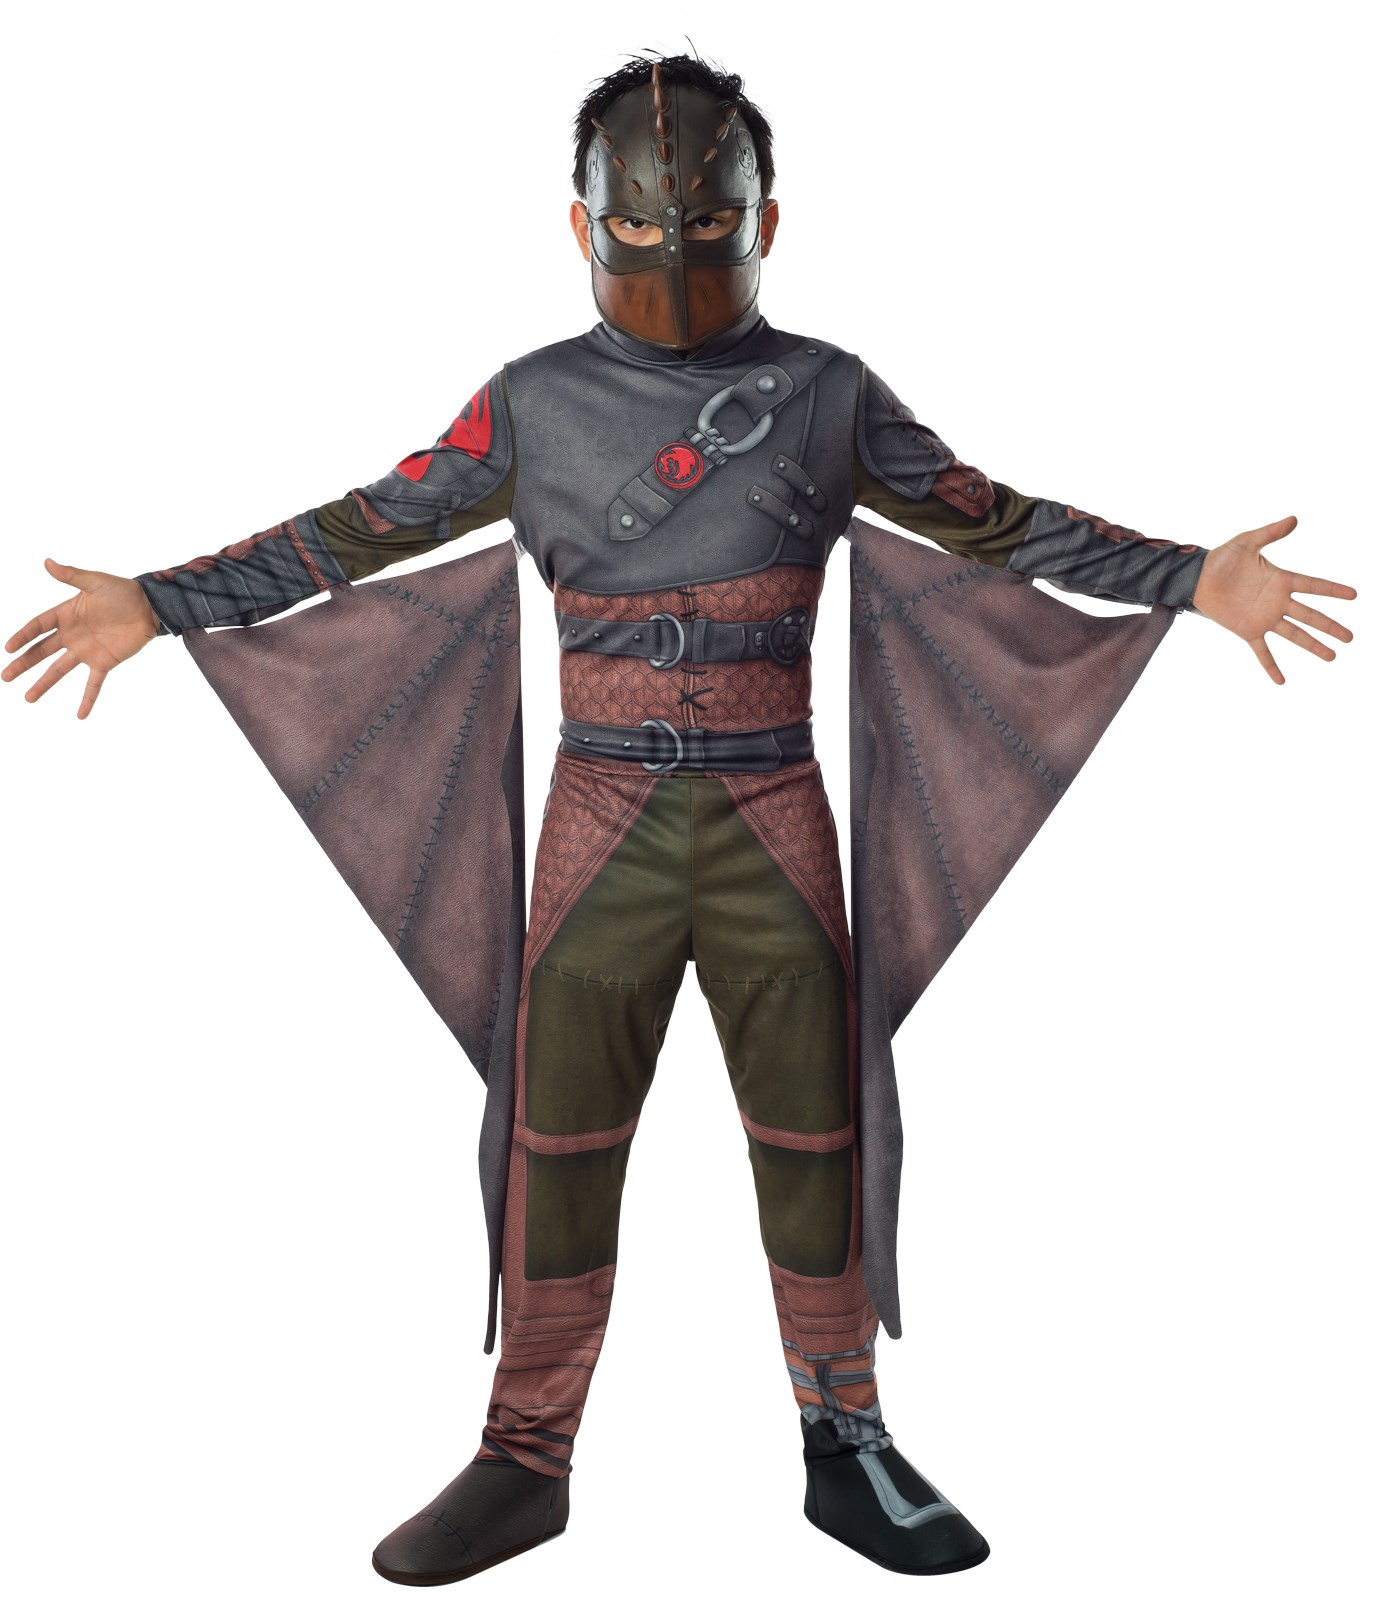 How to Train Your Dragon 2 - Hiccup Toddler/Child Costume Small (4-6)